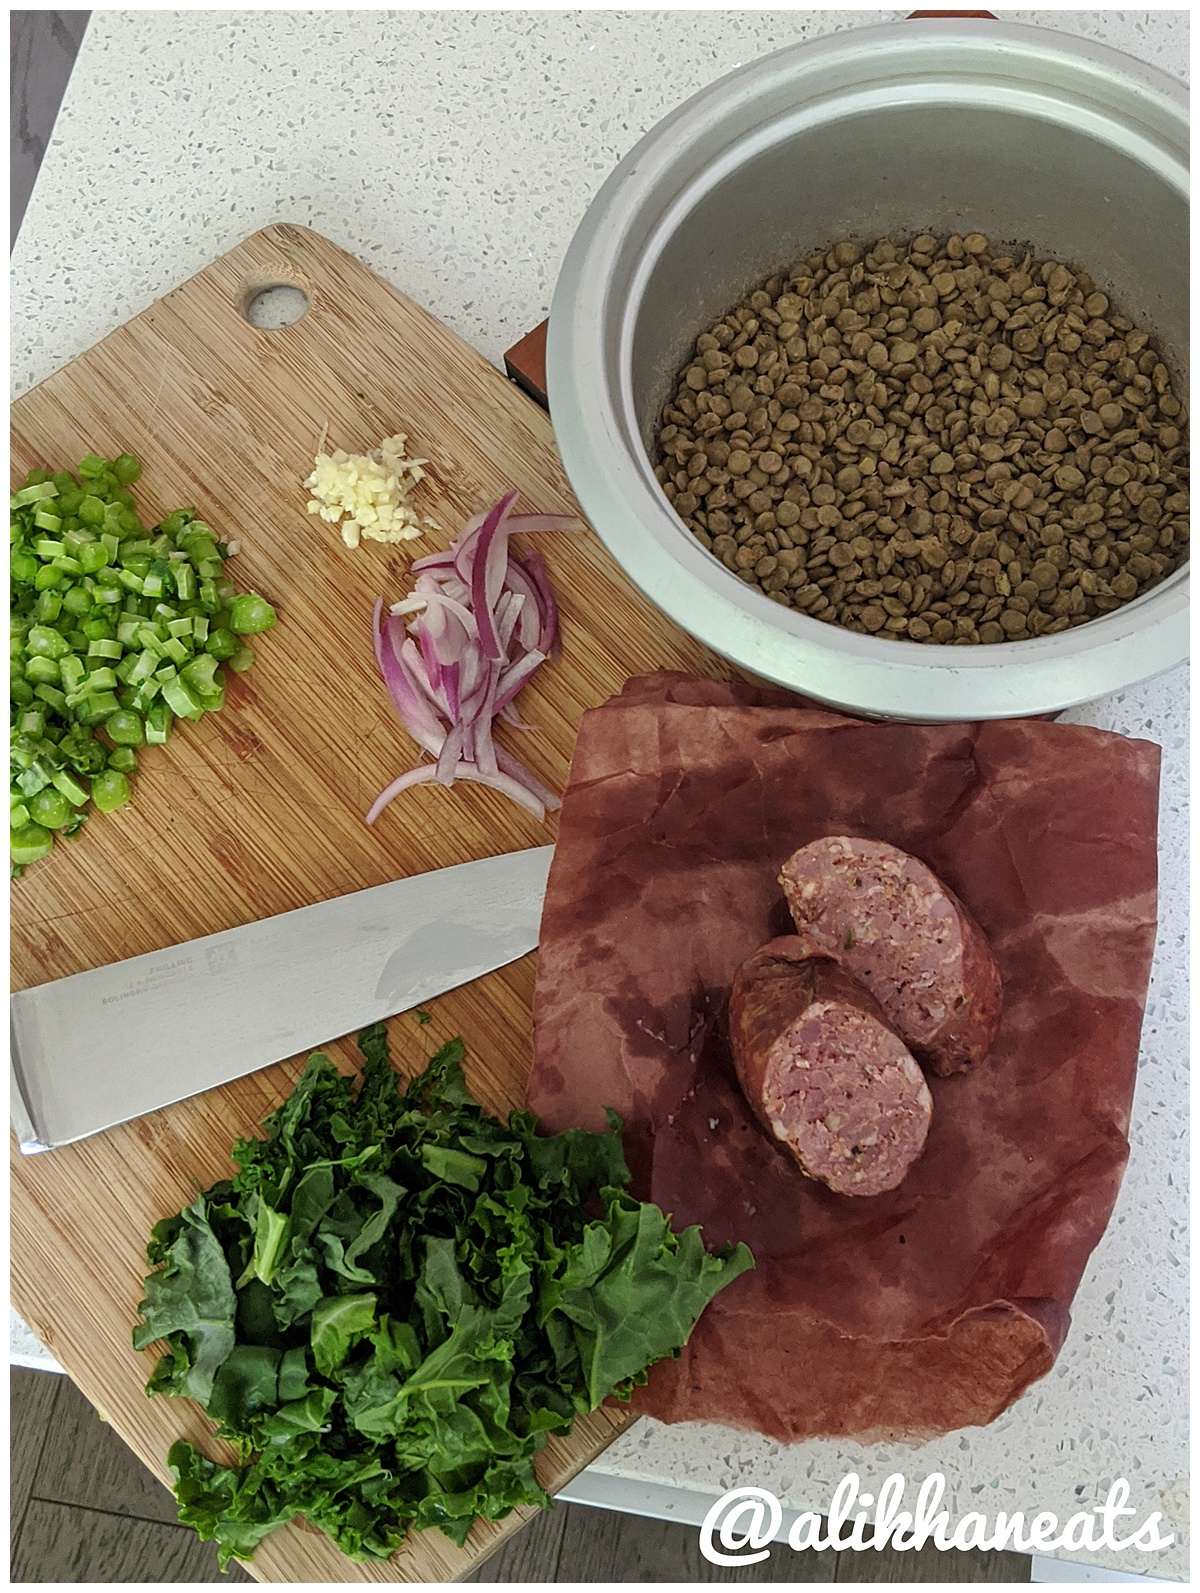 Warm lentil salad ingredients